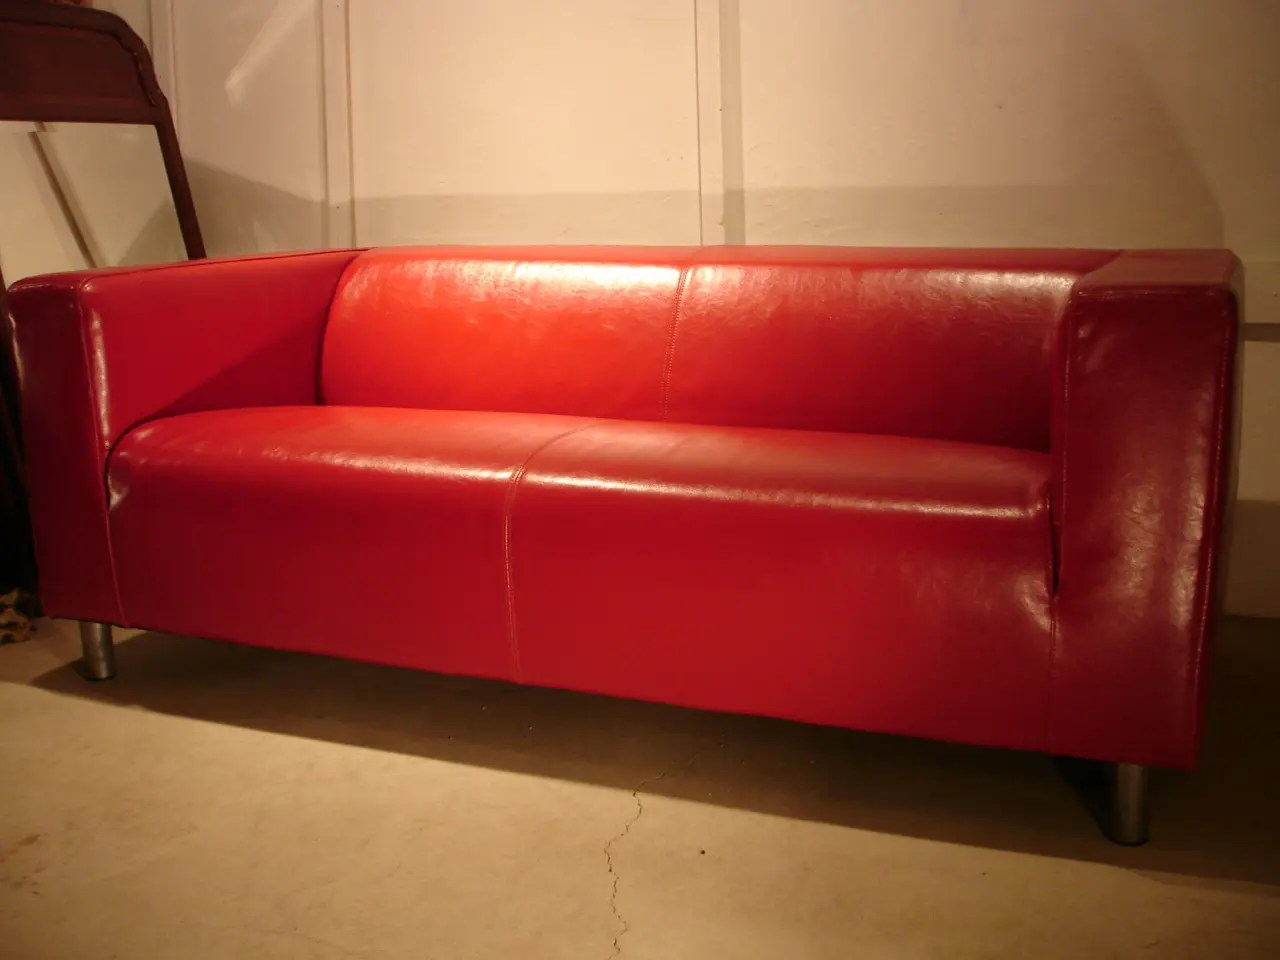 faux leather sofa replacement covers fairfield inn bed how to fix my klippan sofa: will ...